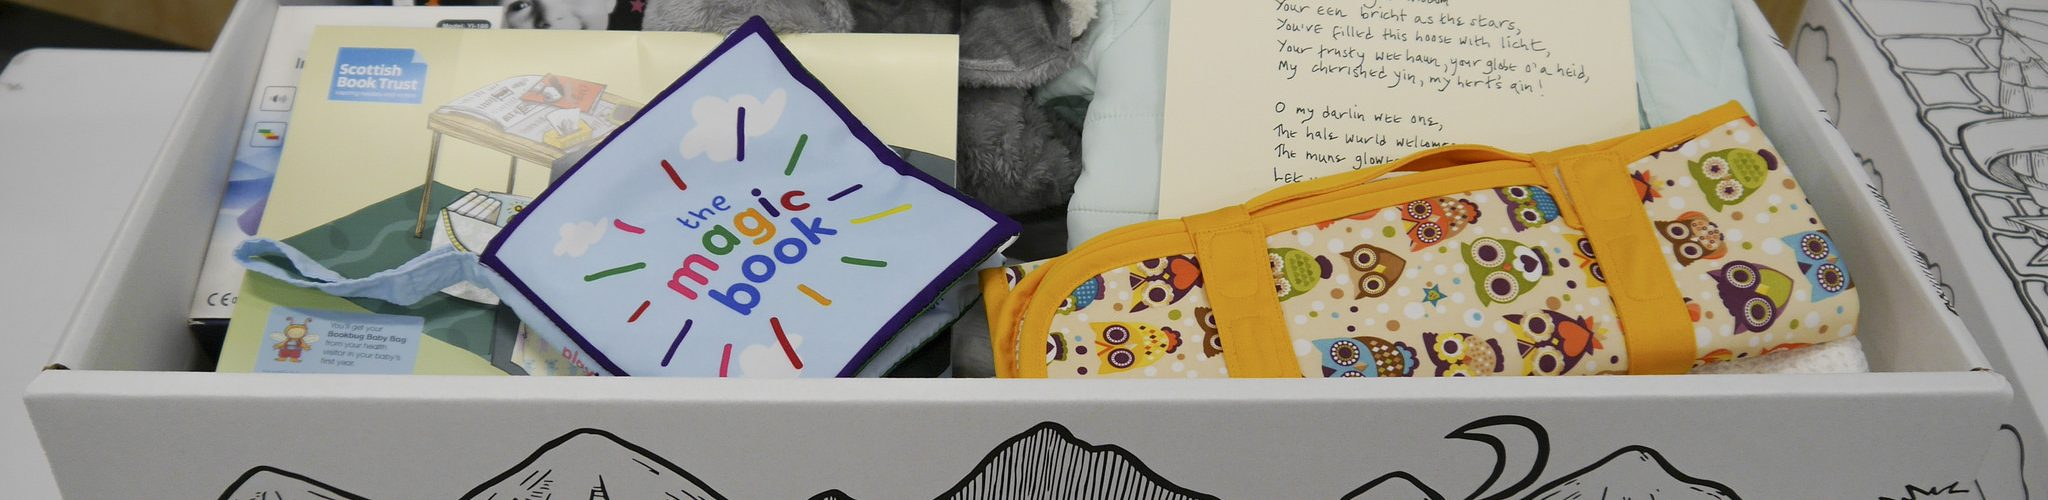 White cardboard box with baby books and clothes inside